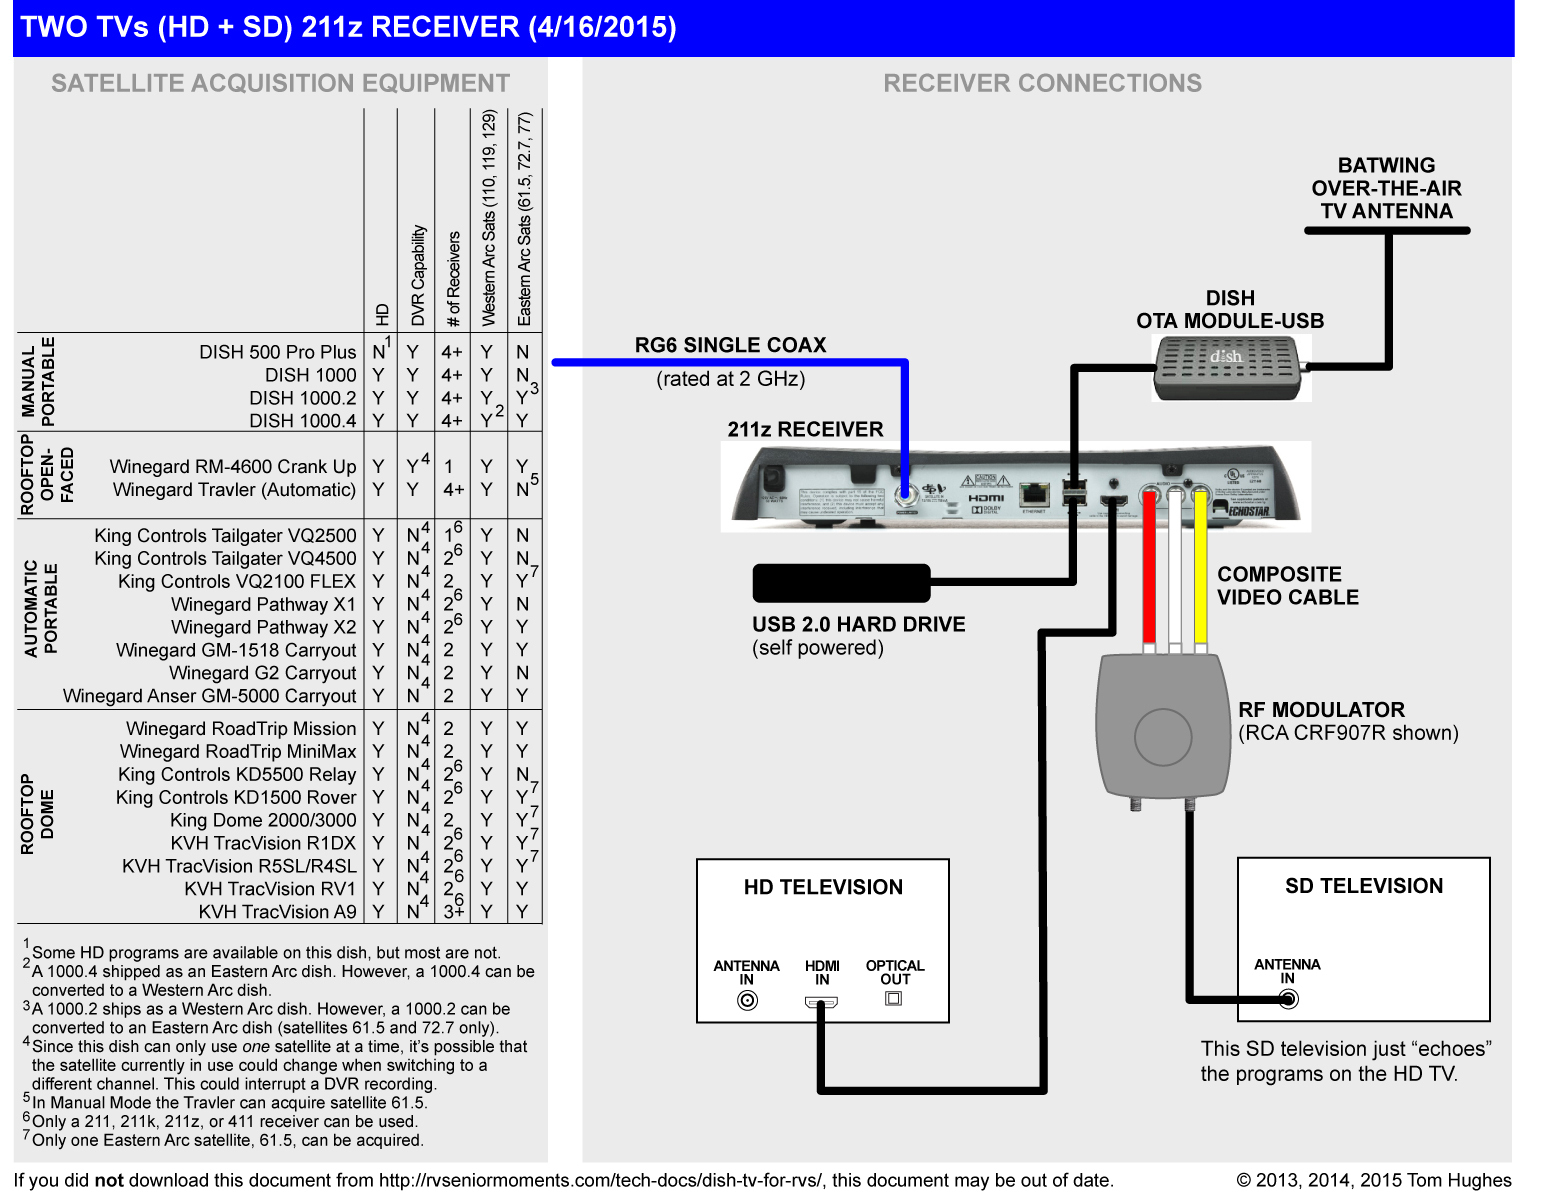 DIAGRAM] Dish 722 Receiver Wiring Diagram For 2 Televisions FULL Version HD  Quality 2 Televisions - PLANTDIAGRAM.TESCOMAITALIABLOG.ITIl blog di Tescoma Italia